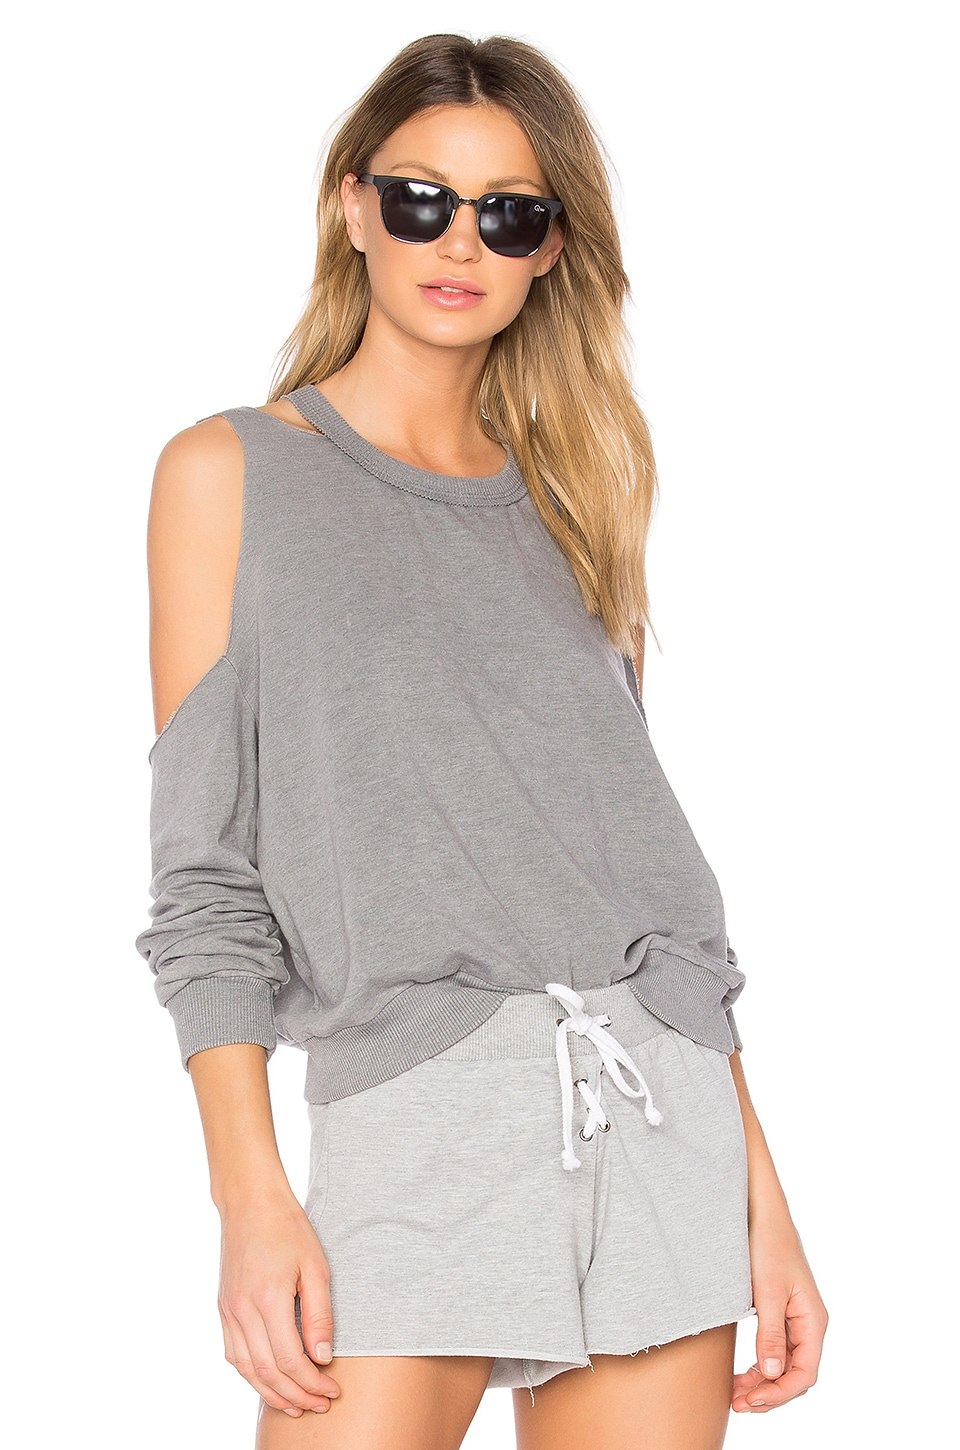 Saguaro Cold Shoulder Sweatshirt by Project Social T